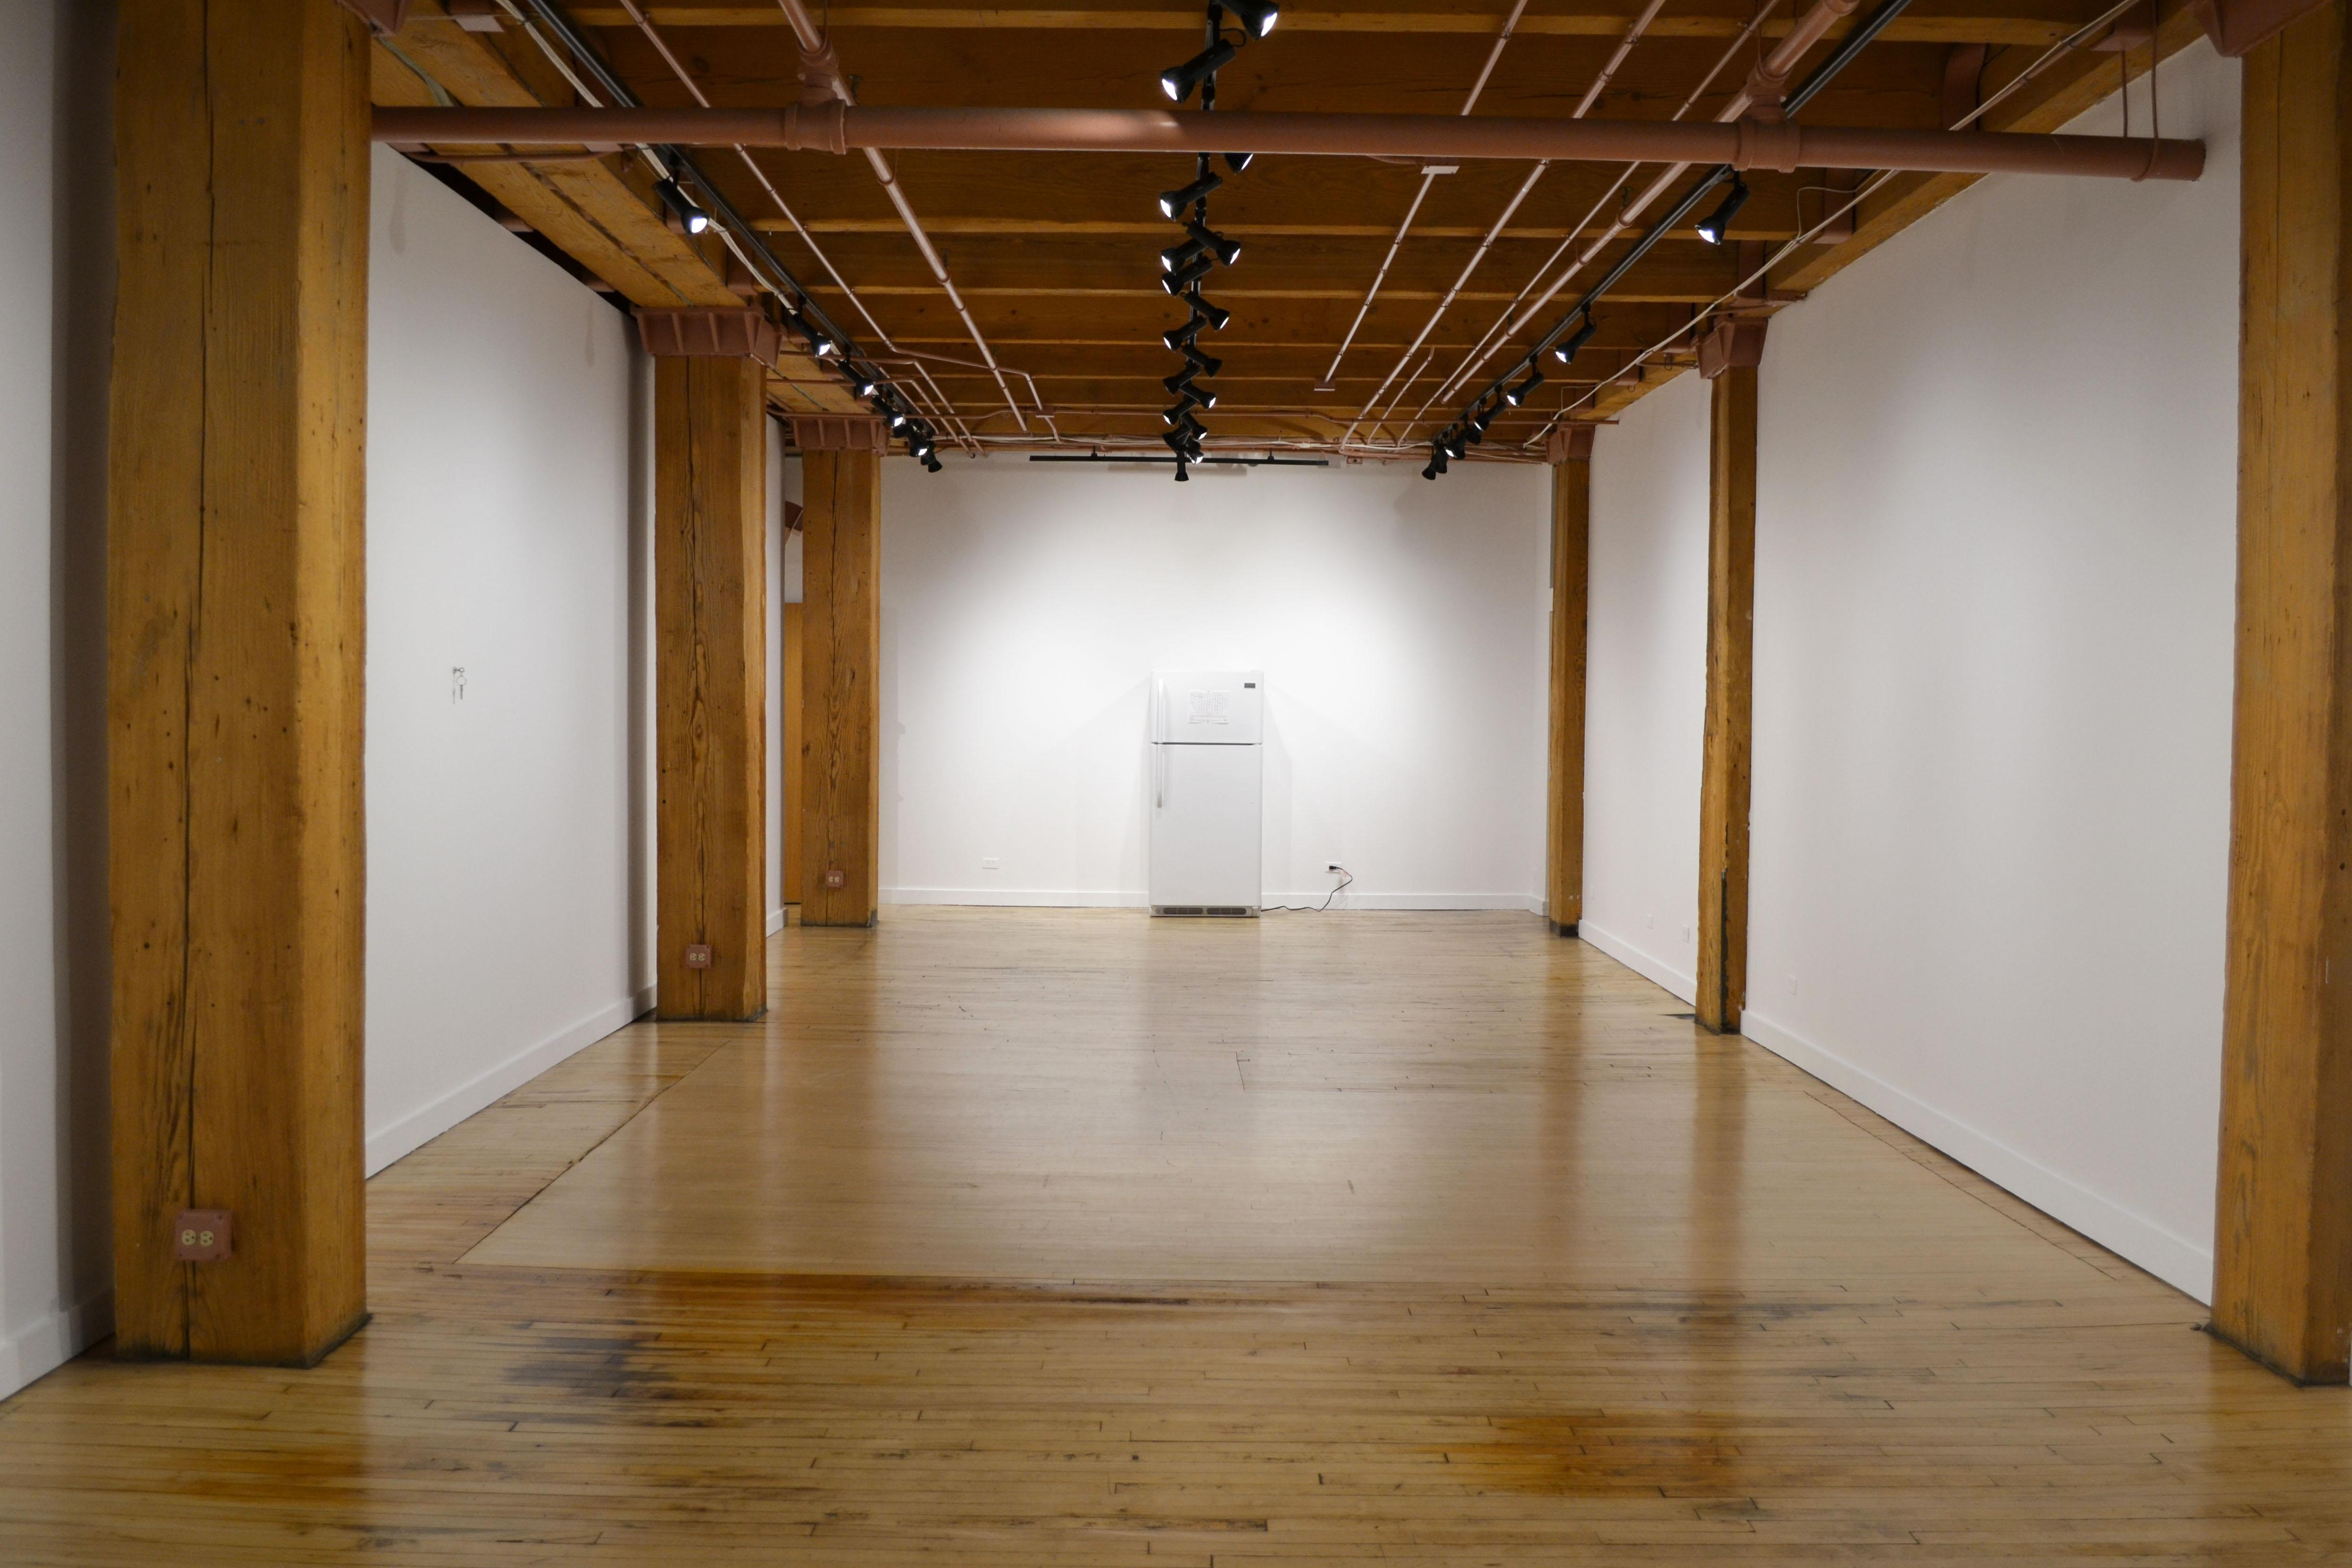 The minimalist exhibition at the Weinberg/Newton Gallery raises questions about representation in art and invites visitors to engage in the conversation surrounding homelessness. (Maya Miller / Chicago Tonight.)